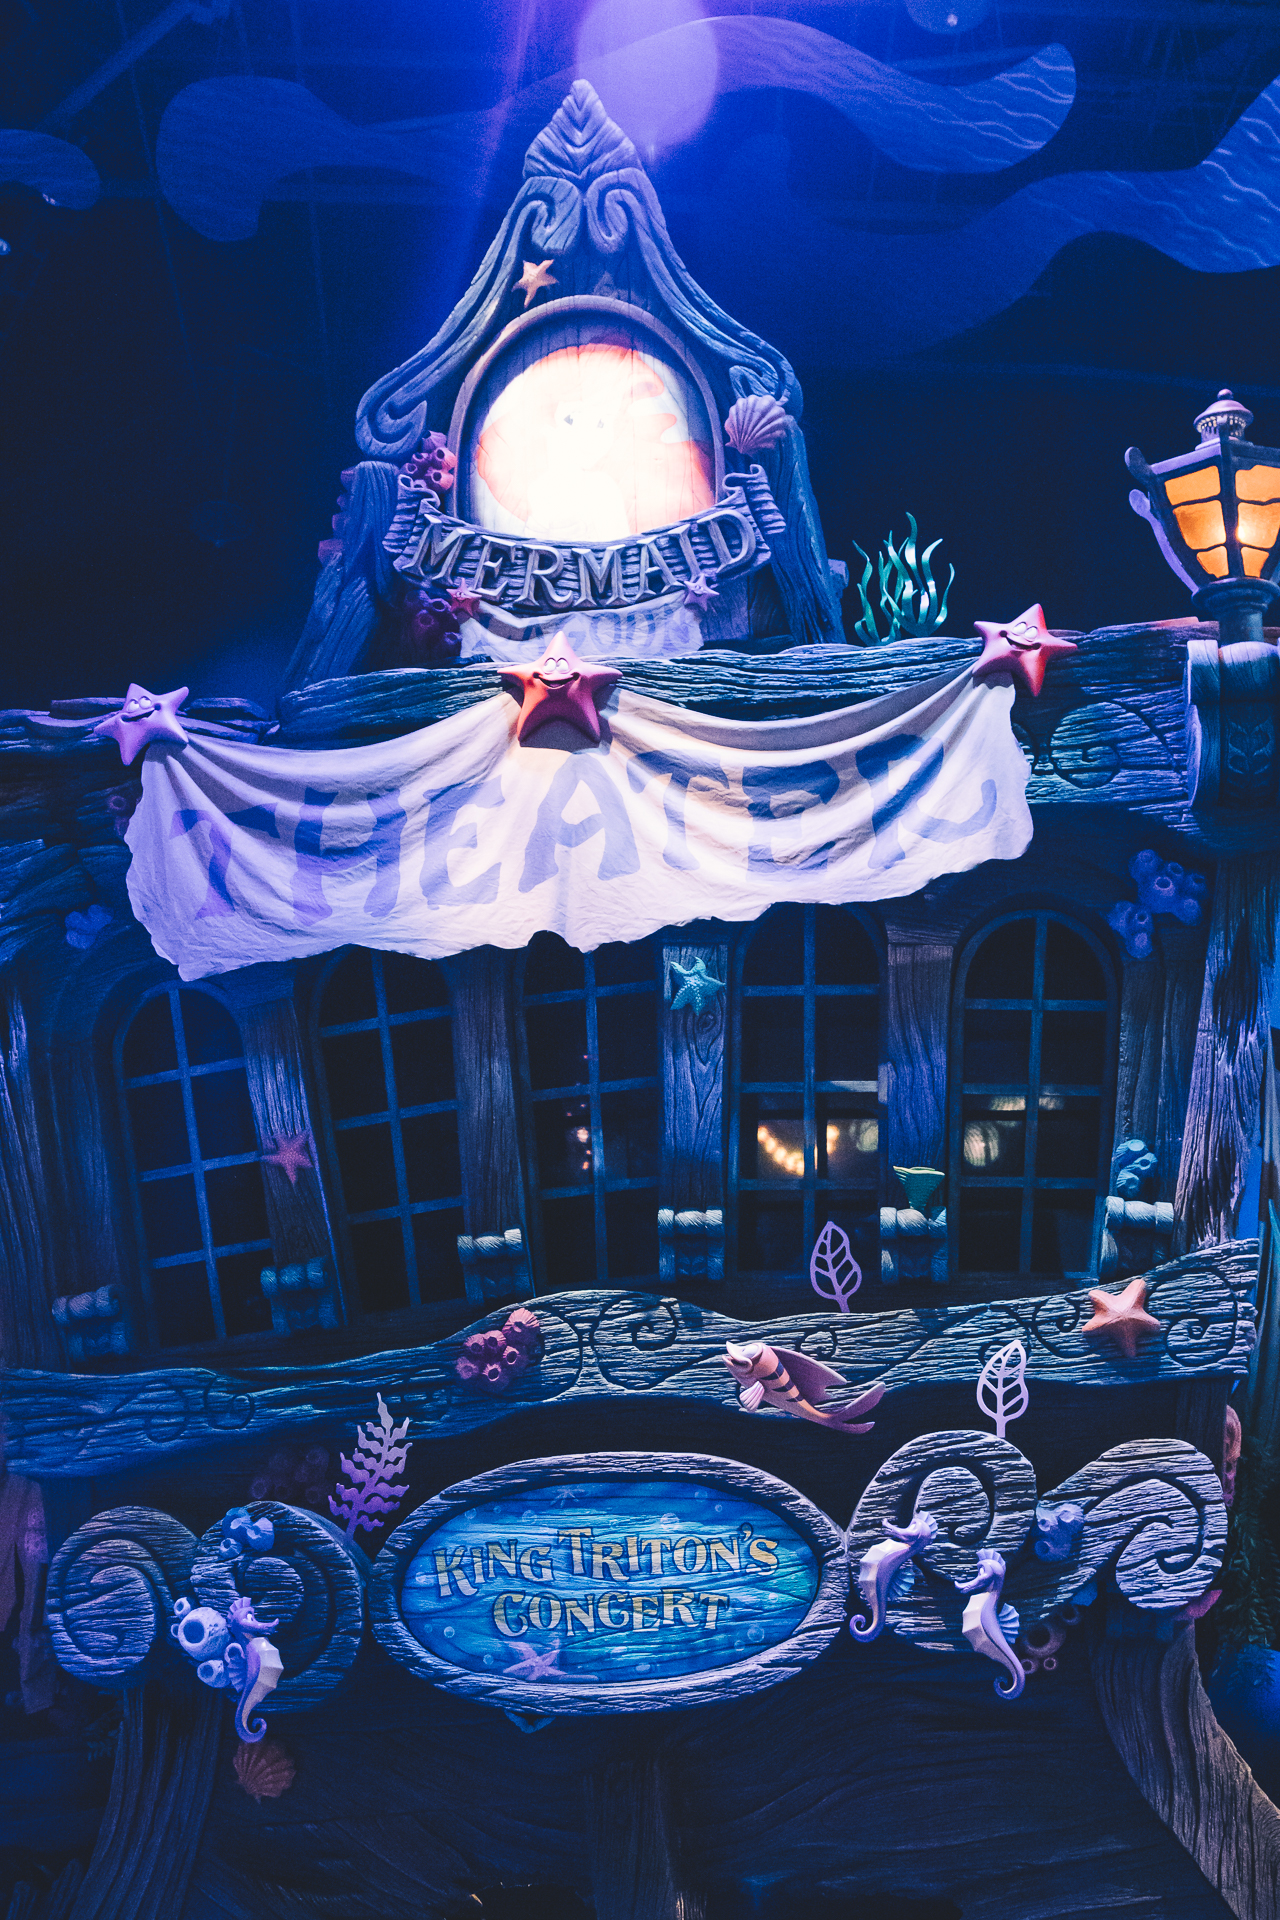 About an hour later we wound up at Mermaid Lagoon for our King Triton's Concert Fast Pass. If you know me,  this  show means everything to me,but it was closed for the entirety of our trip. Luckily, this was the first day of operation after their refurbishment.